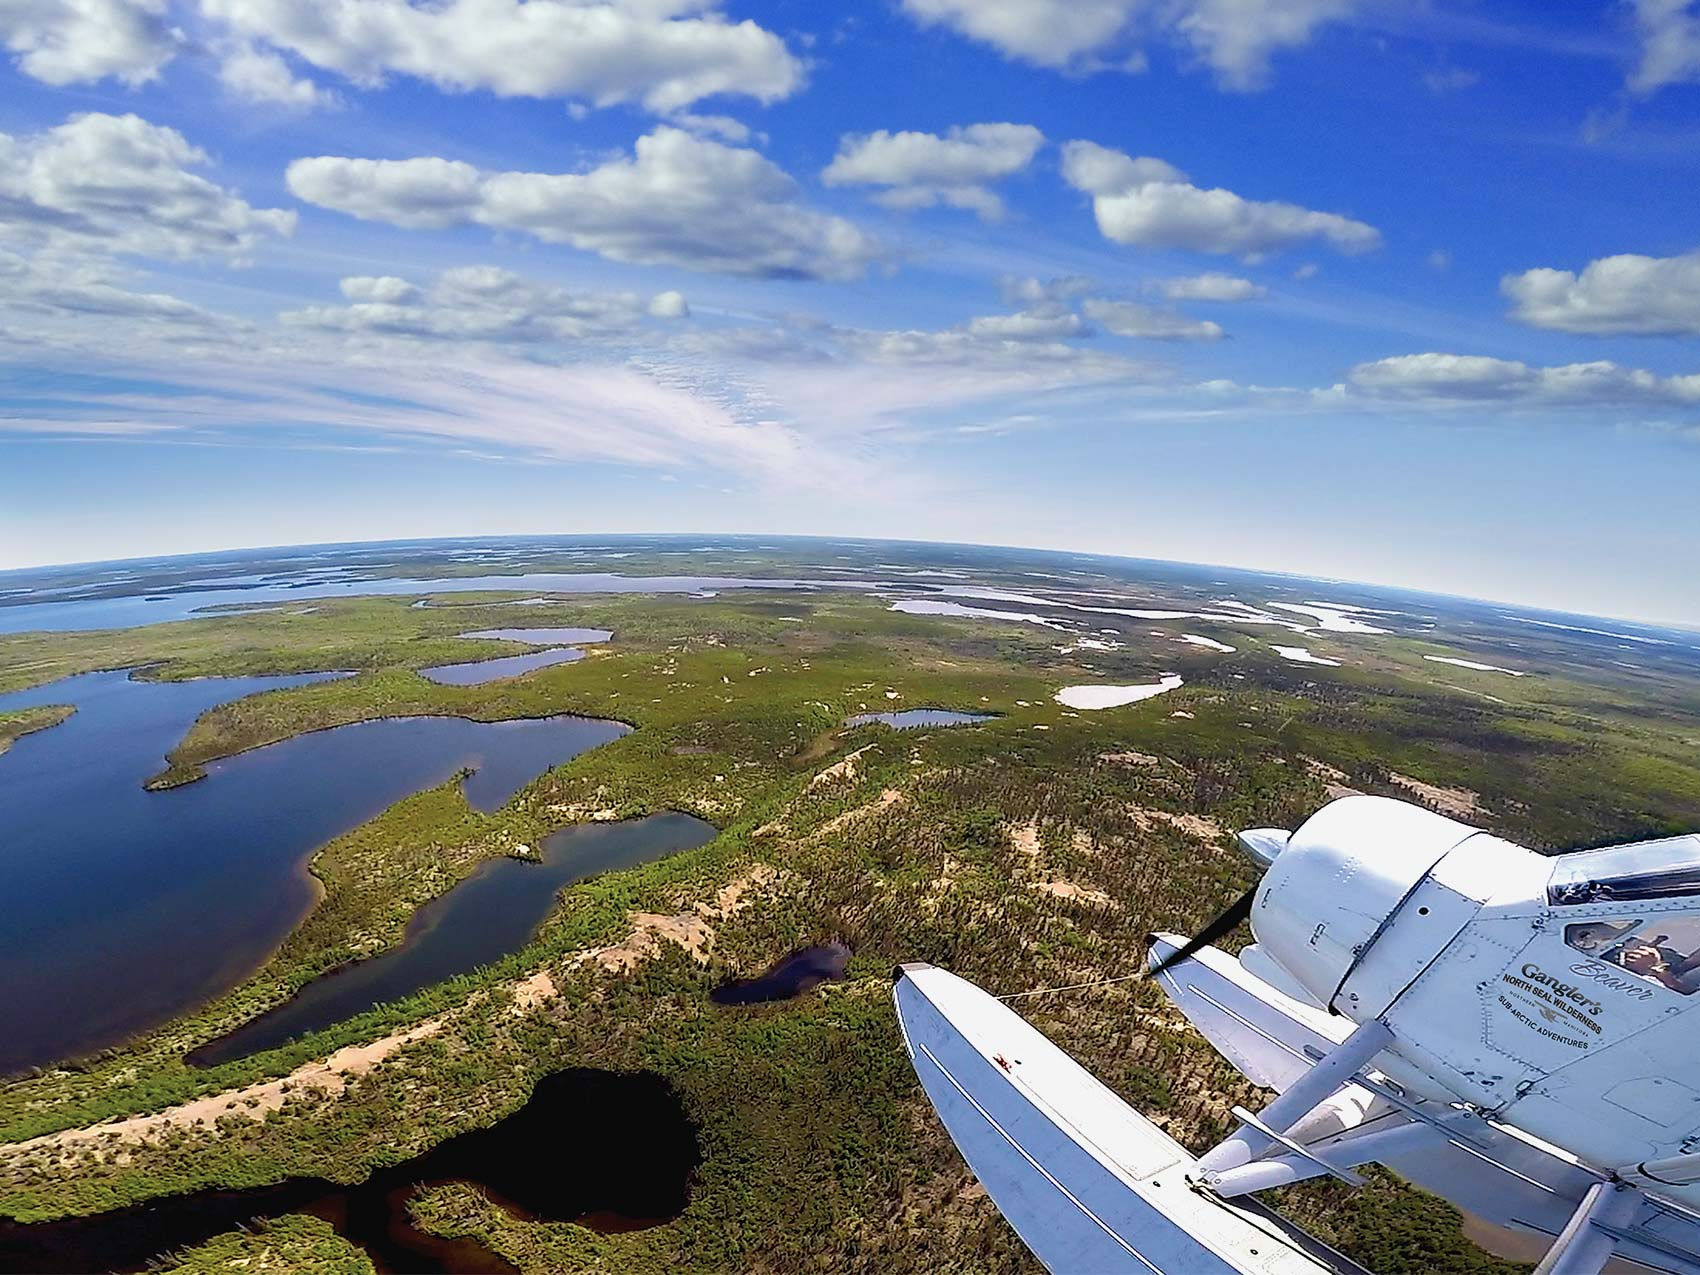 Aerial view of a float plane flying over Gangler's North Seal Lodge